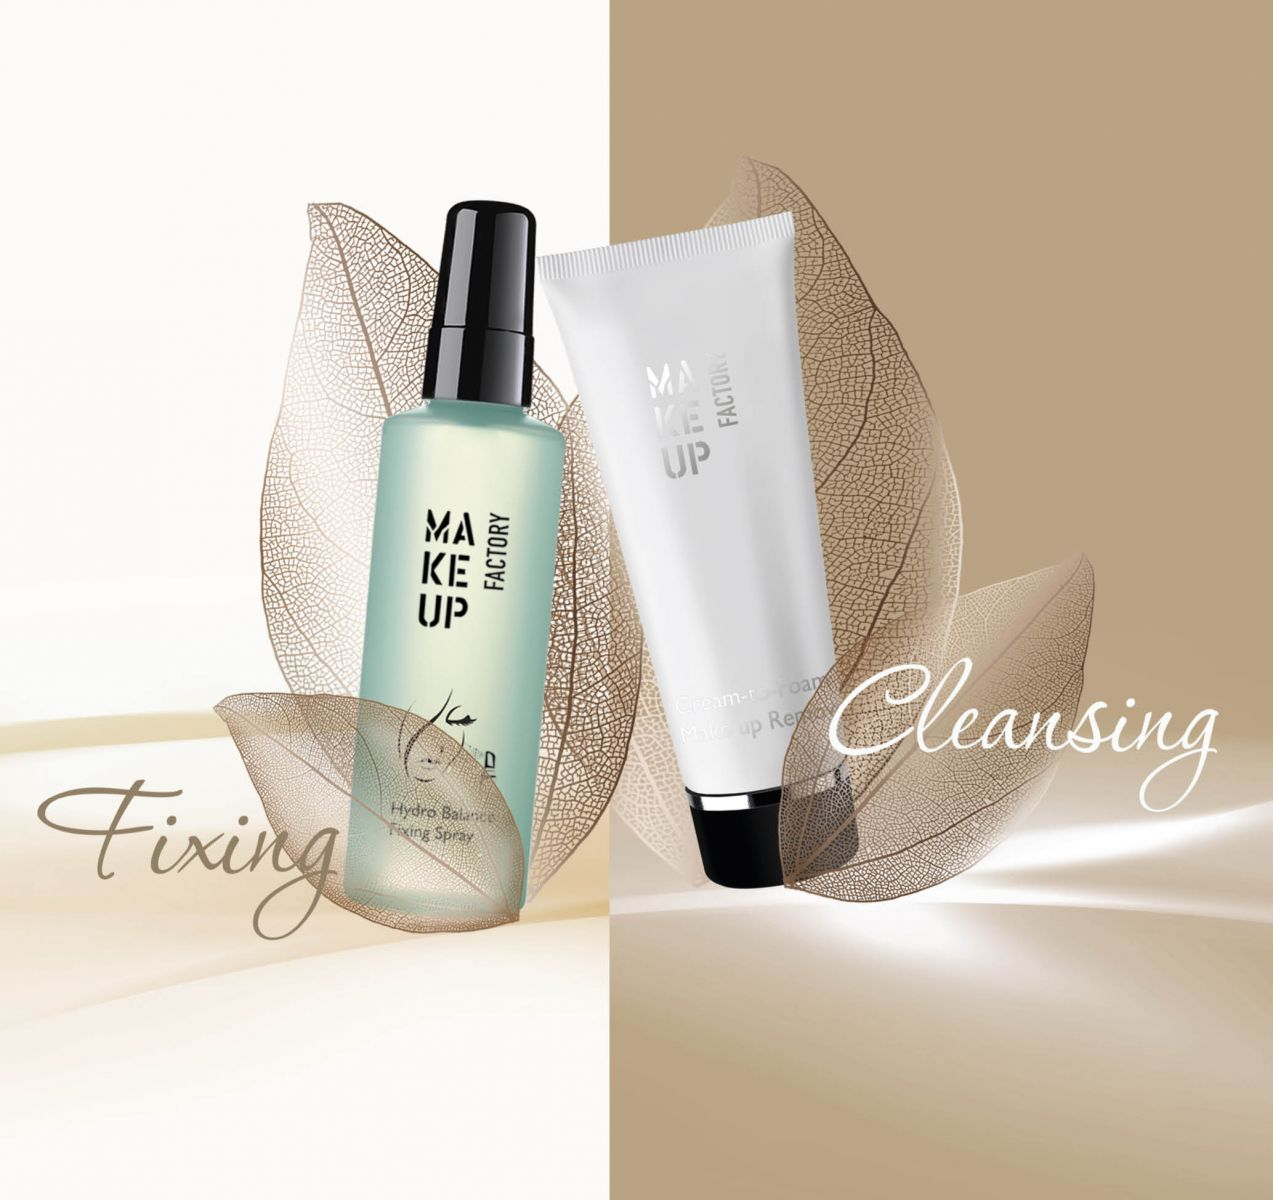 Летние помощники: новый спрей Hydro Balance Fixing Spray и пенка Cream-to-Foam Make up Remover от Make up Factory